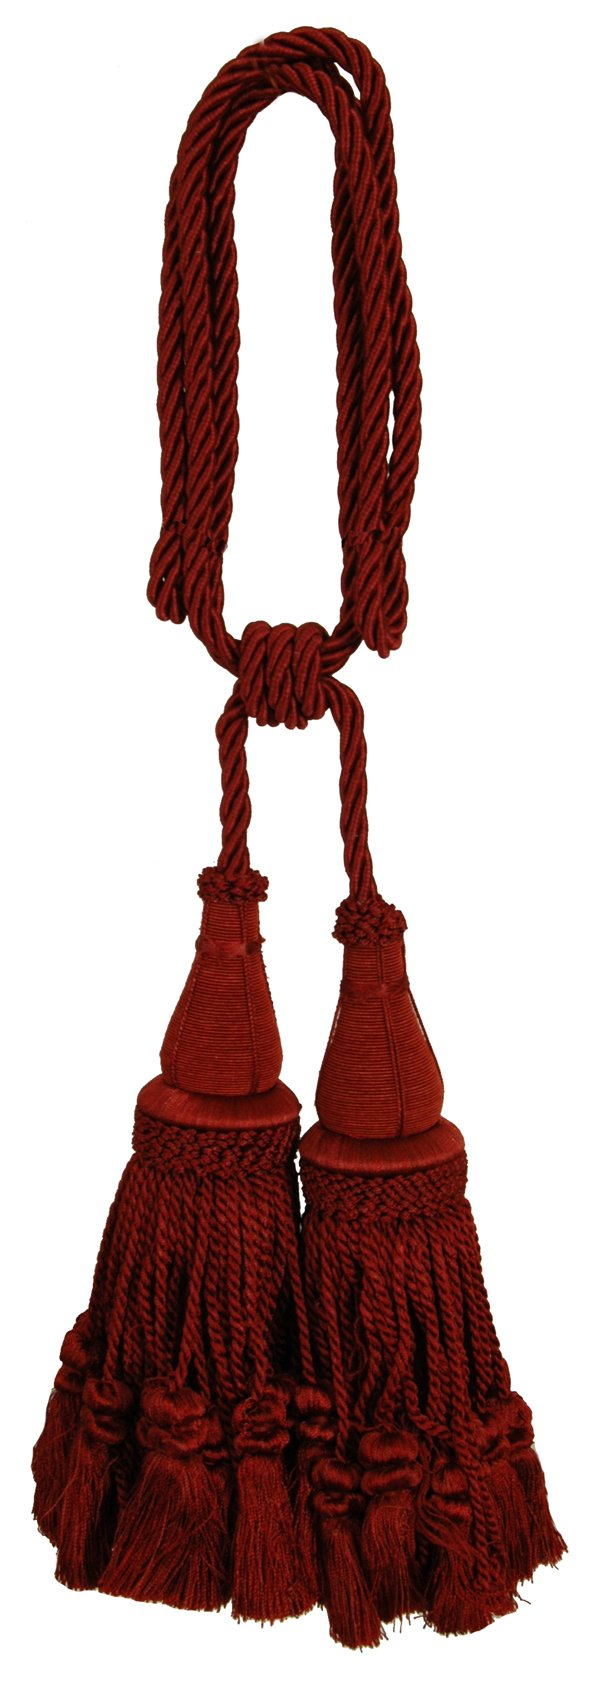 India House 79894 Jhalar Tieback with 10-Inch Double Tassel and 36-Inch Cord, Sienna